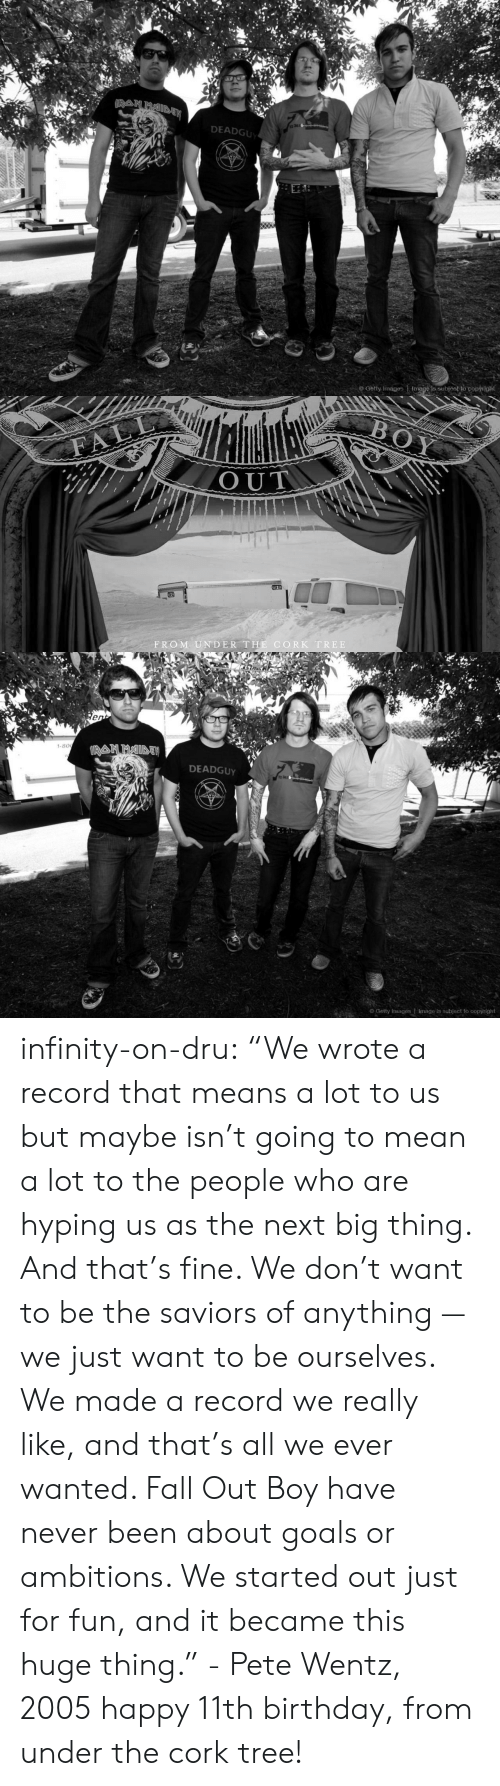 "next-big-thing: DEADGU  o Getty Images Image is subjeot to copyright   OUT  FROM UNDER THE CORK TREE   1-80  DEADGUy  Getty Images | Image is subject to copyright infinity-on-dru:   ""We wrote a record that means a lot to us but maybe isn't going to mean a lot to the people who are hyping us as the next big thing. And that's fine. We don't want to be the saviors of anything — we just want to be ourselves. We made a record we really like, and that's all we ever wanted. Fall Out Boy have never been about goals or ambitions. We started out just for fun, and it became this huge thing."" - Pete Wentz, 2005 happy 11th birthday, from under the cork tree!"